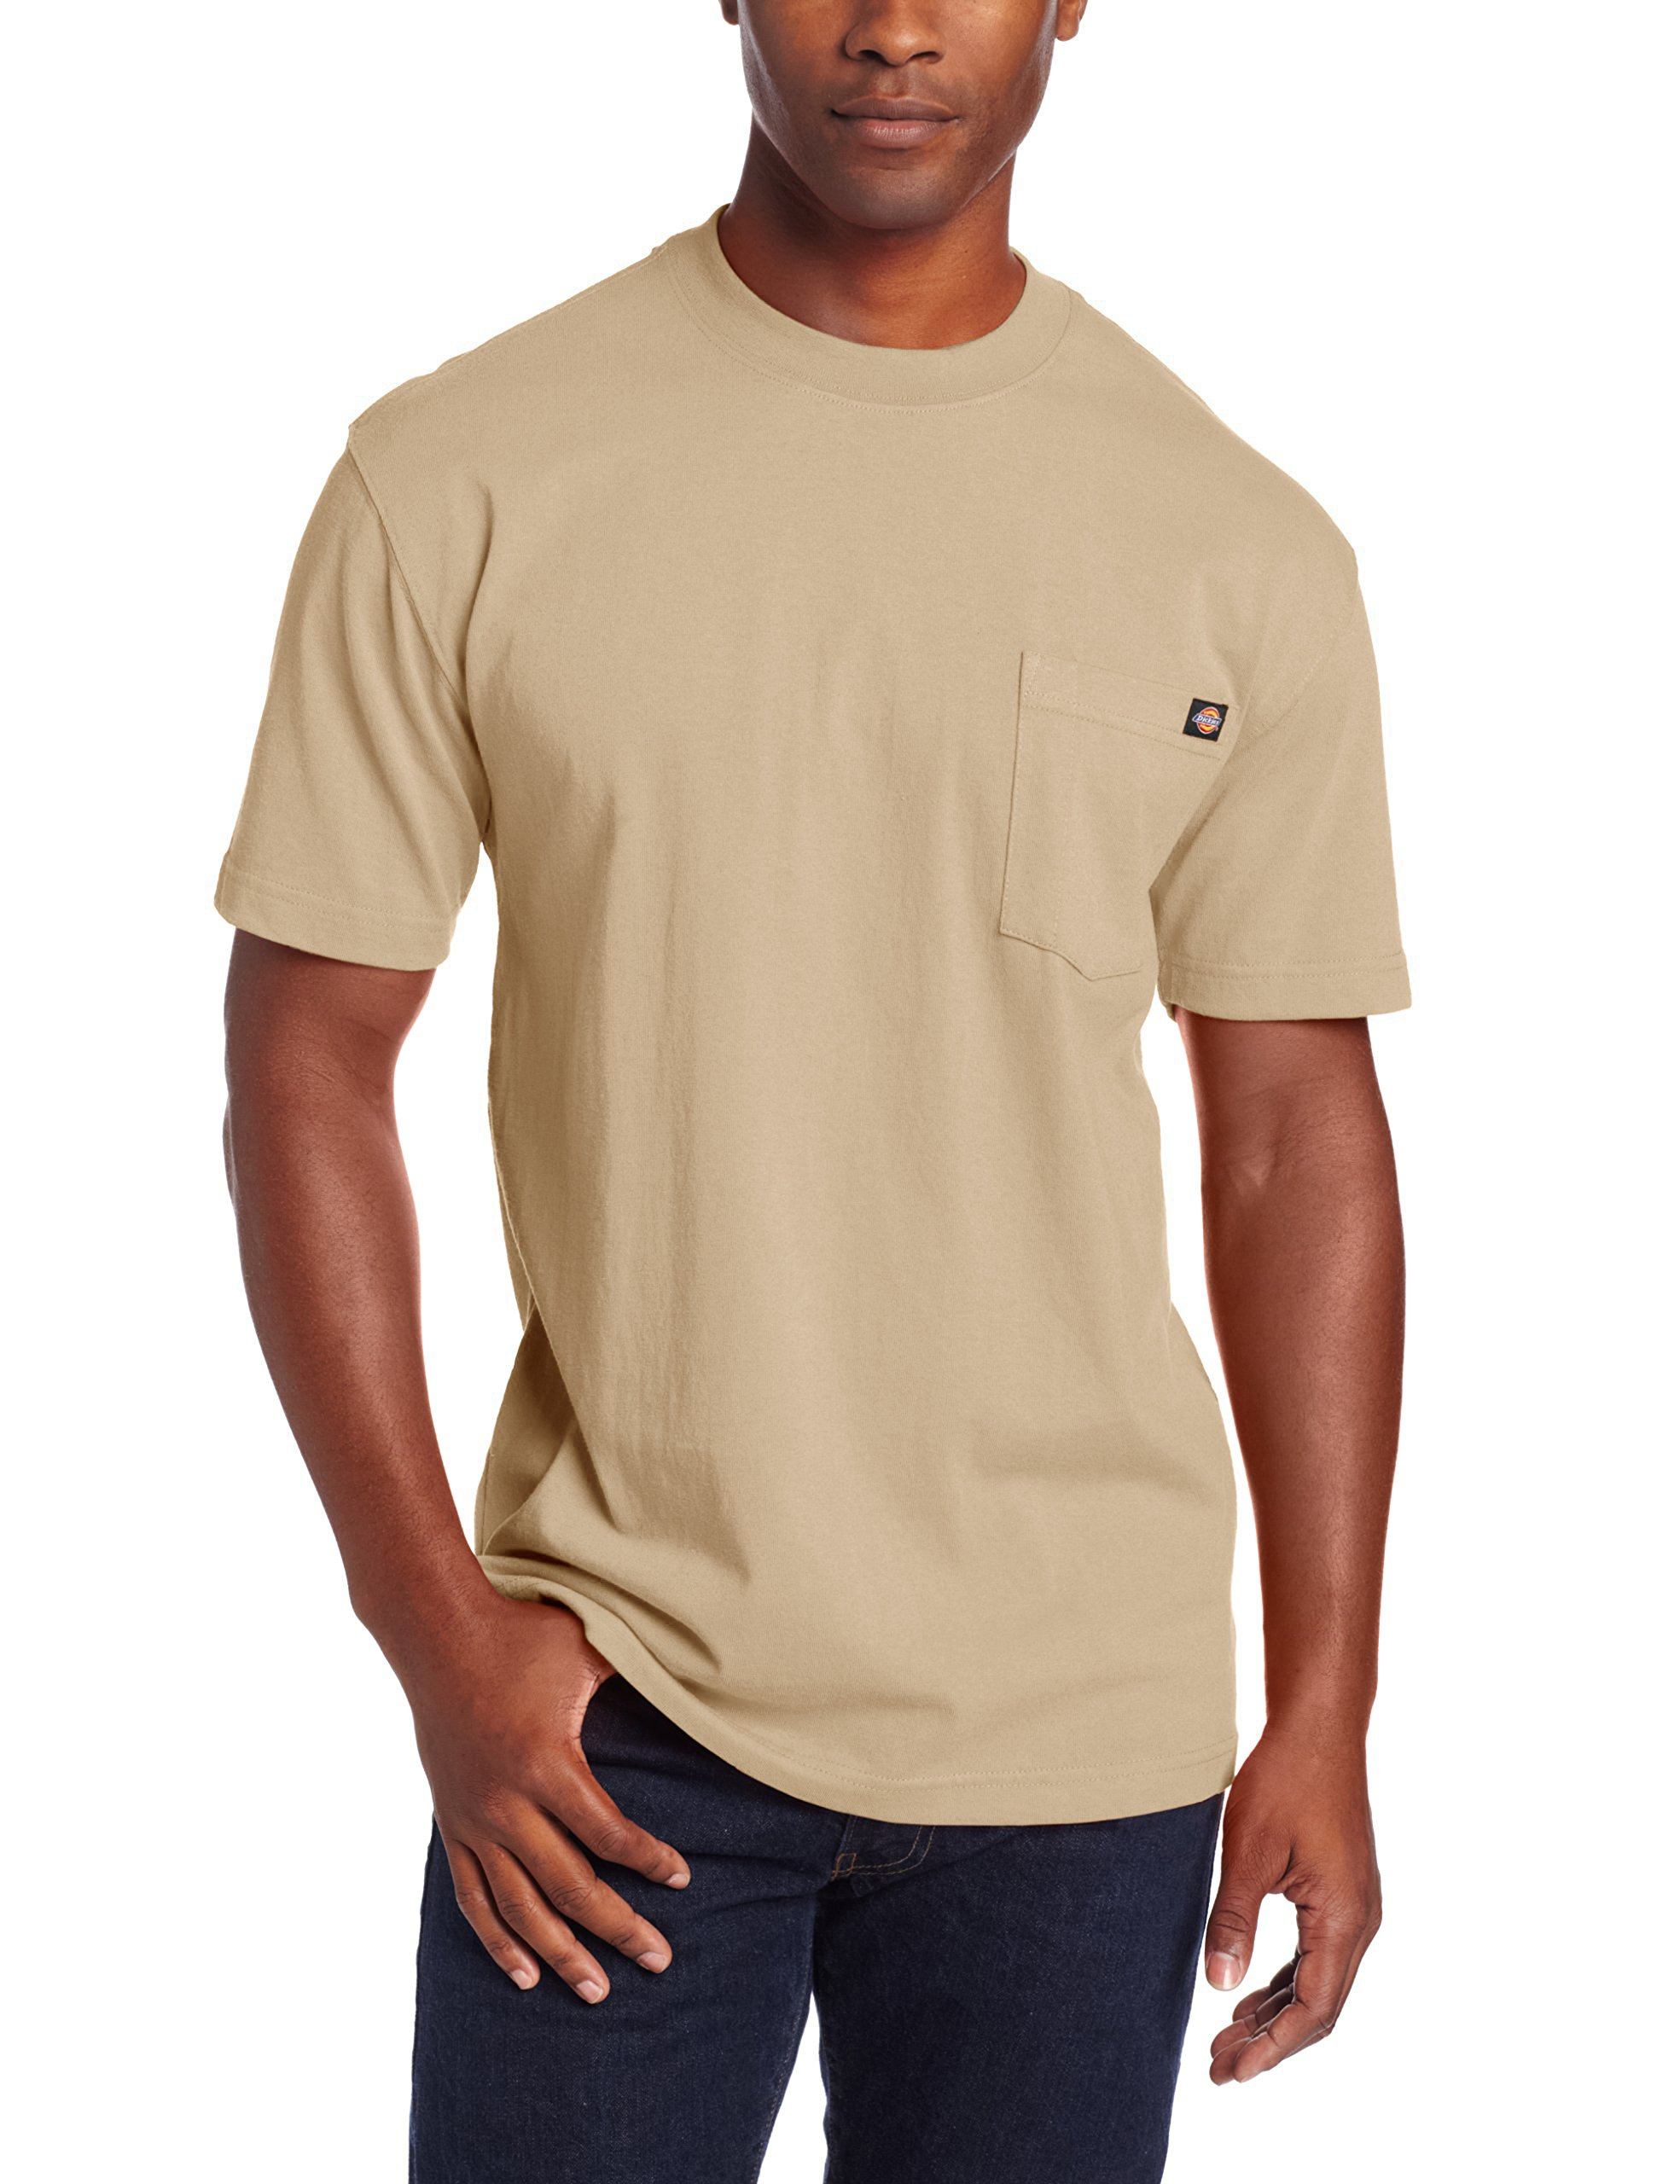 Dickie's Men's Heavyweight Crew Neck Short Sleeve Tee Big-tall,Desert Sand,2X-Large Tall